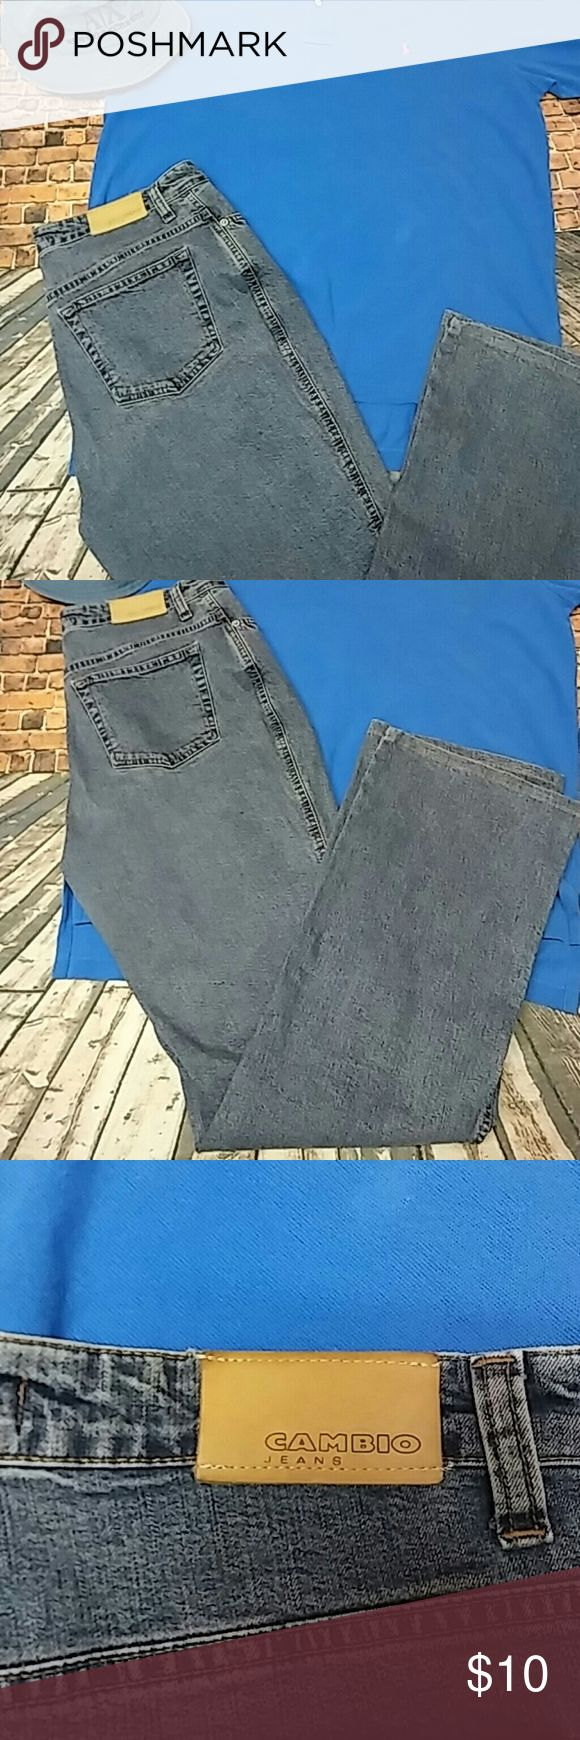 Cambio Jeans Size 10 Very nice medium-light wash jeans Cambio Jeans Straight Leg